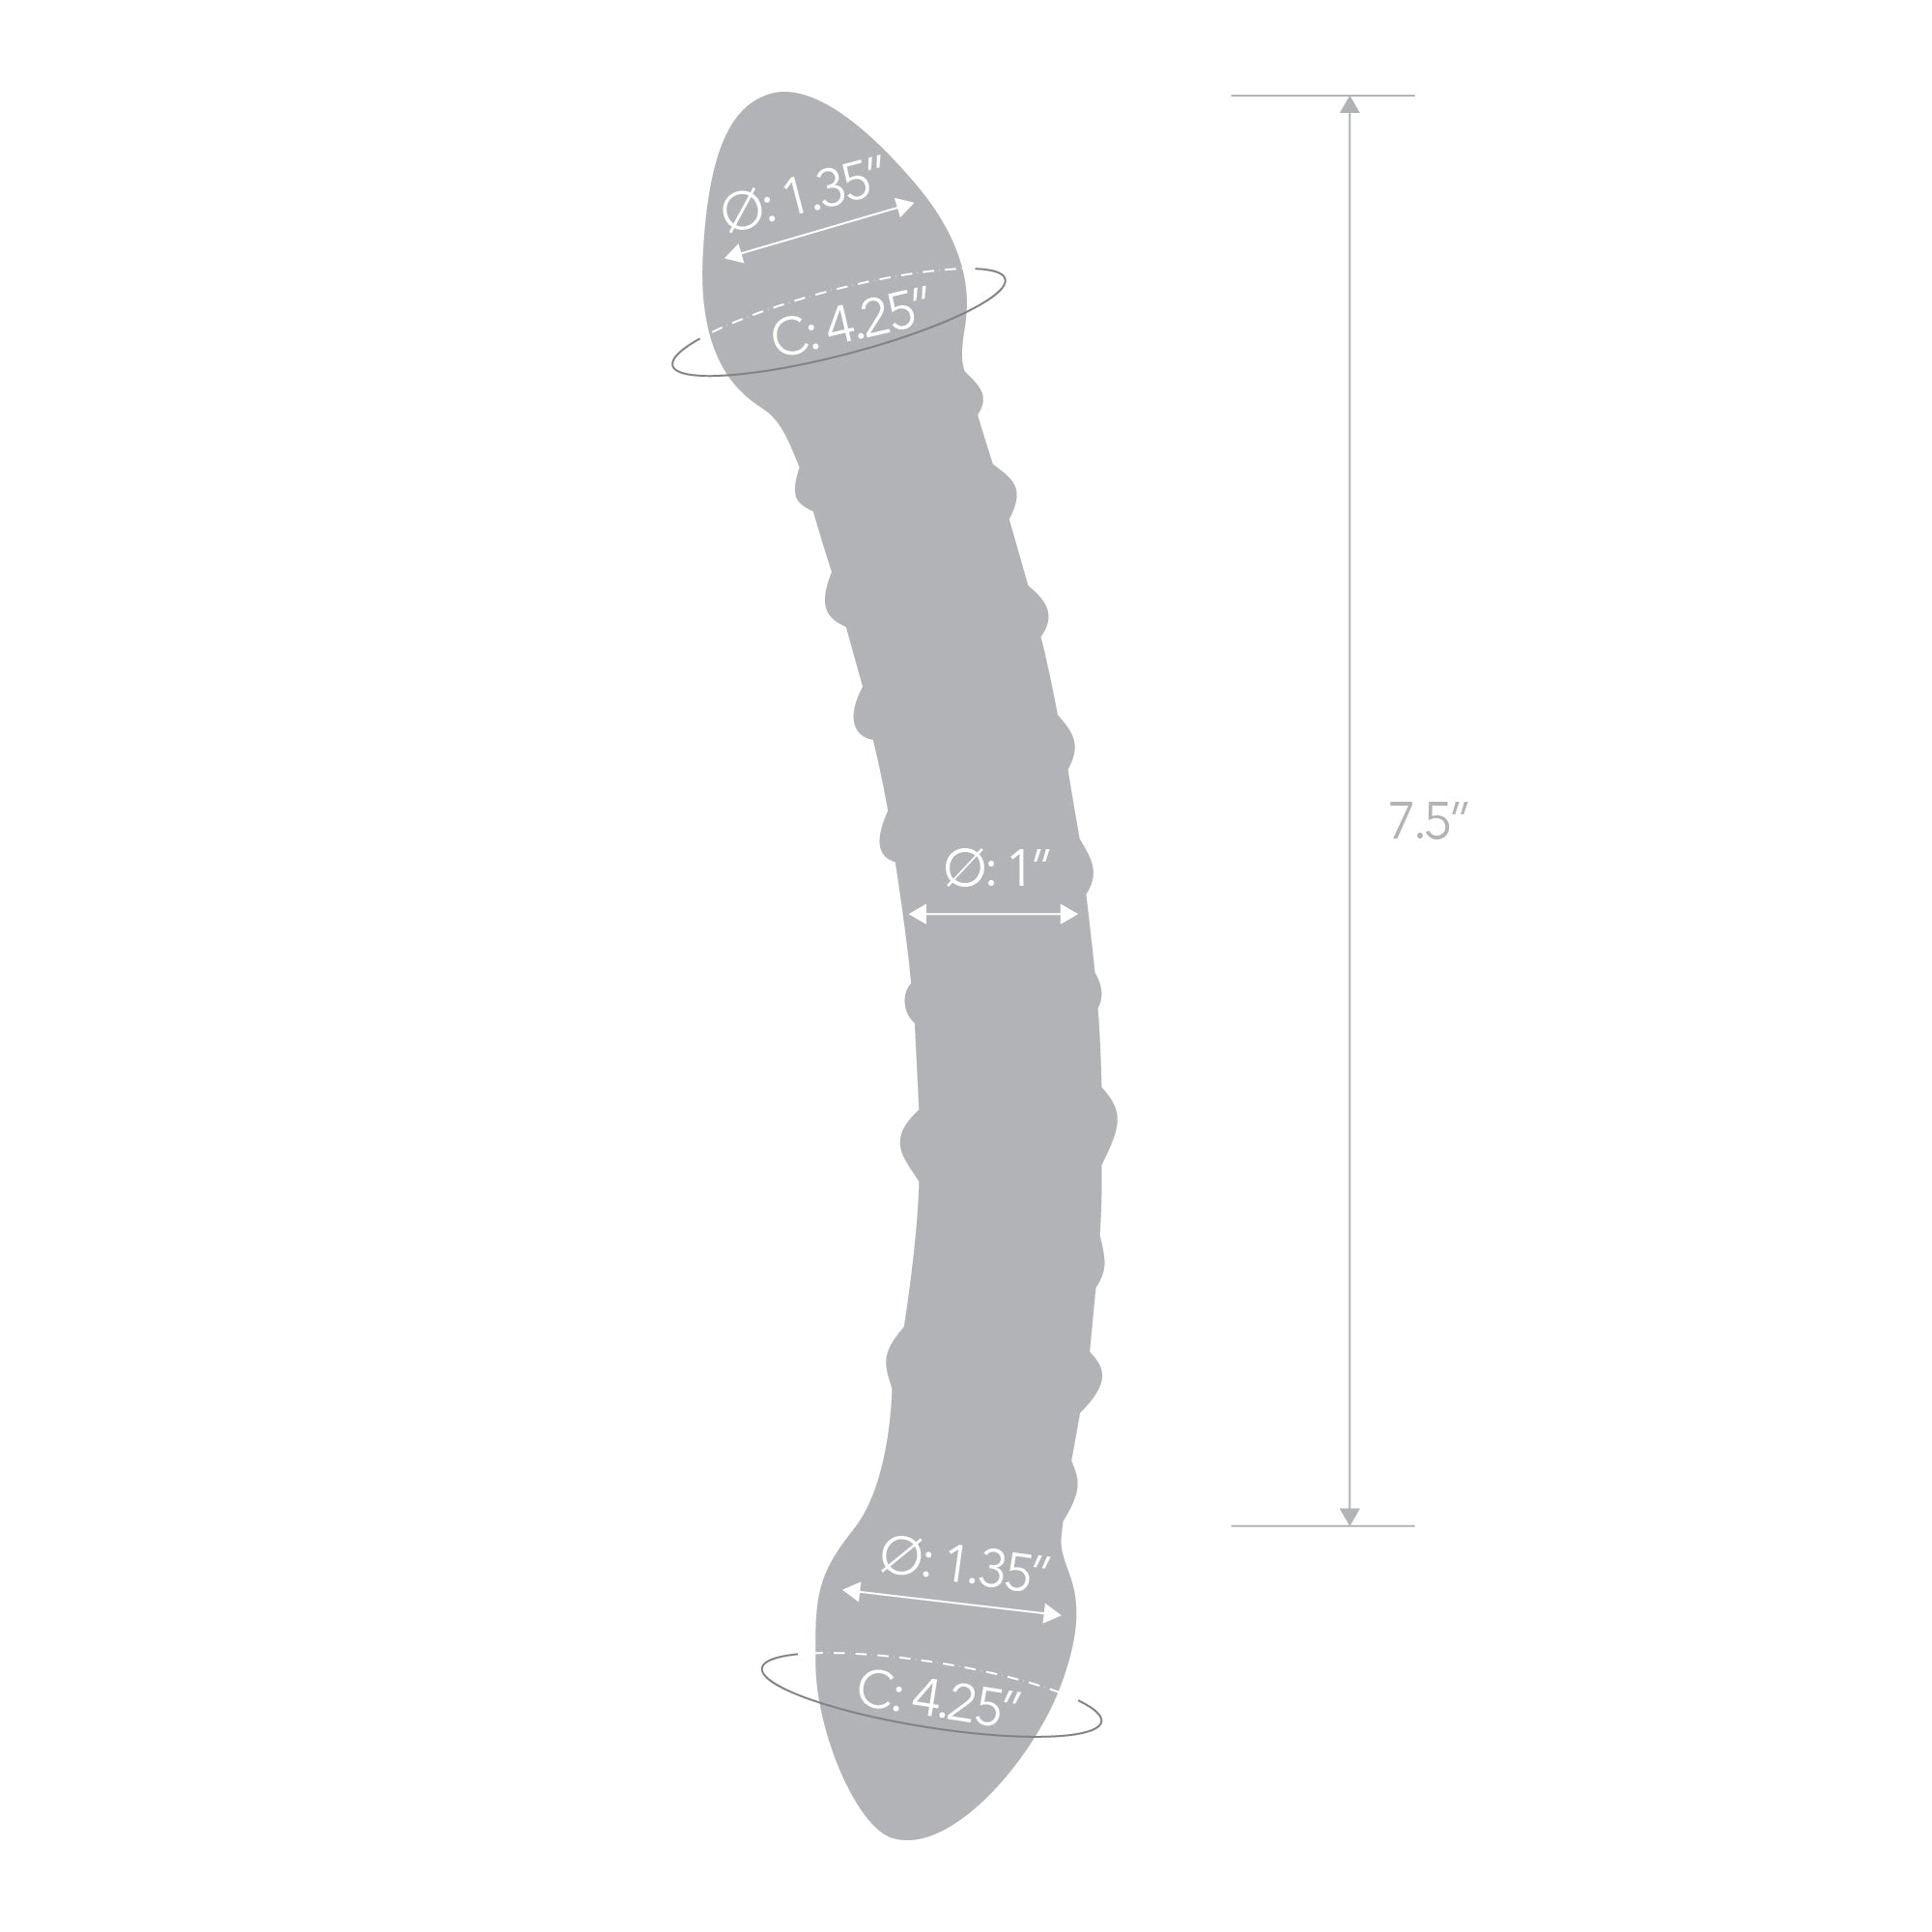 Specifications of the Gläs Double Trouble Glass Dildo